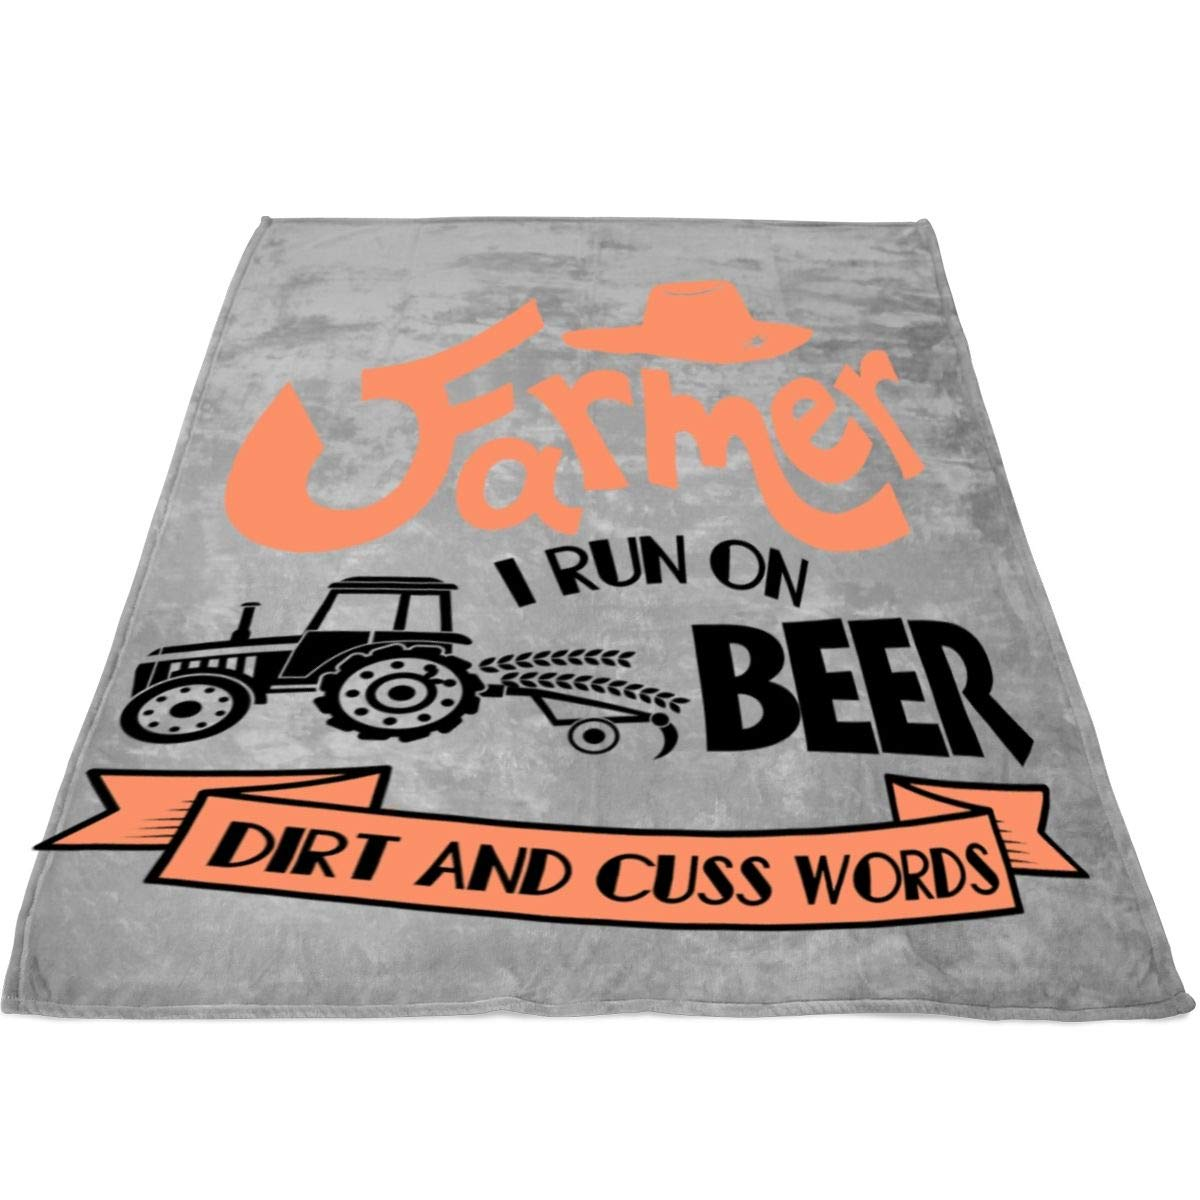 Amazon.com: OAKSTORE Dirt and Cuss Words Blankets - Perfect ...